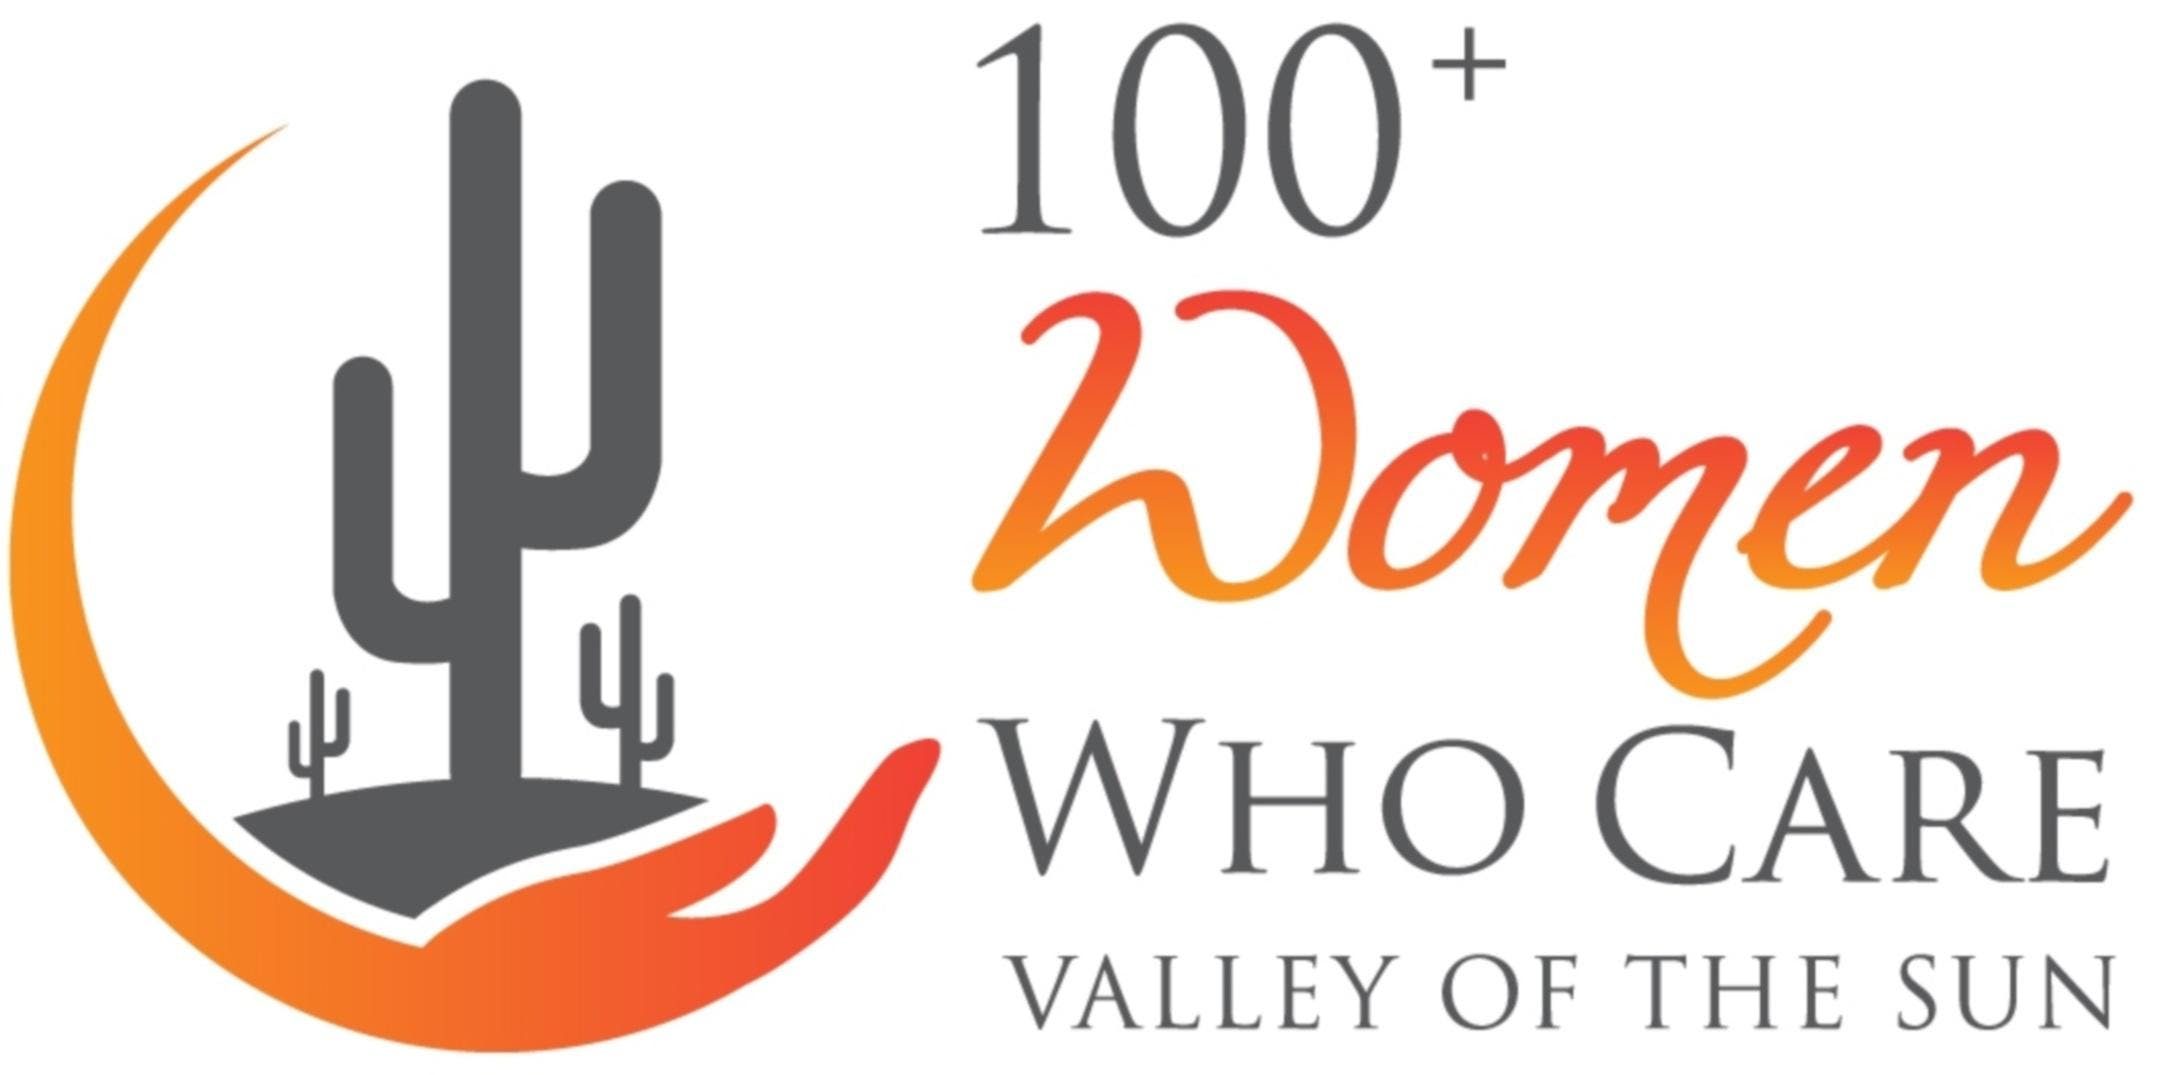 Women Who Care Valley of the Sun - Q3 Giving Circle in East Valley